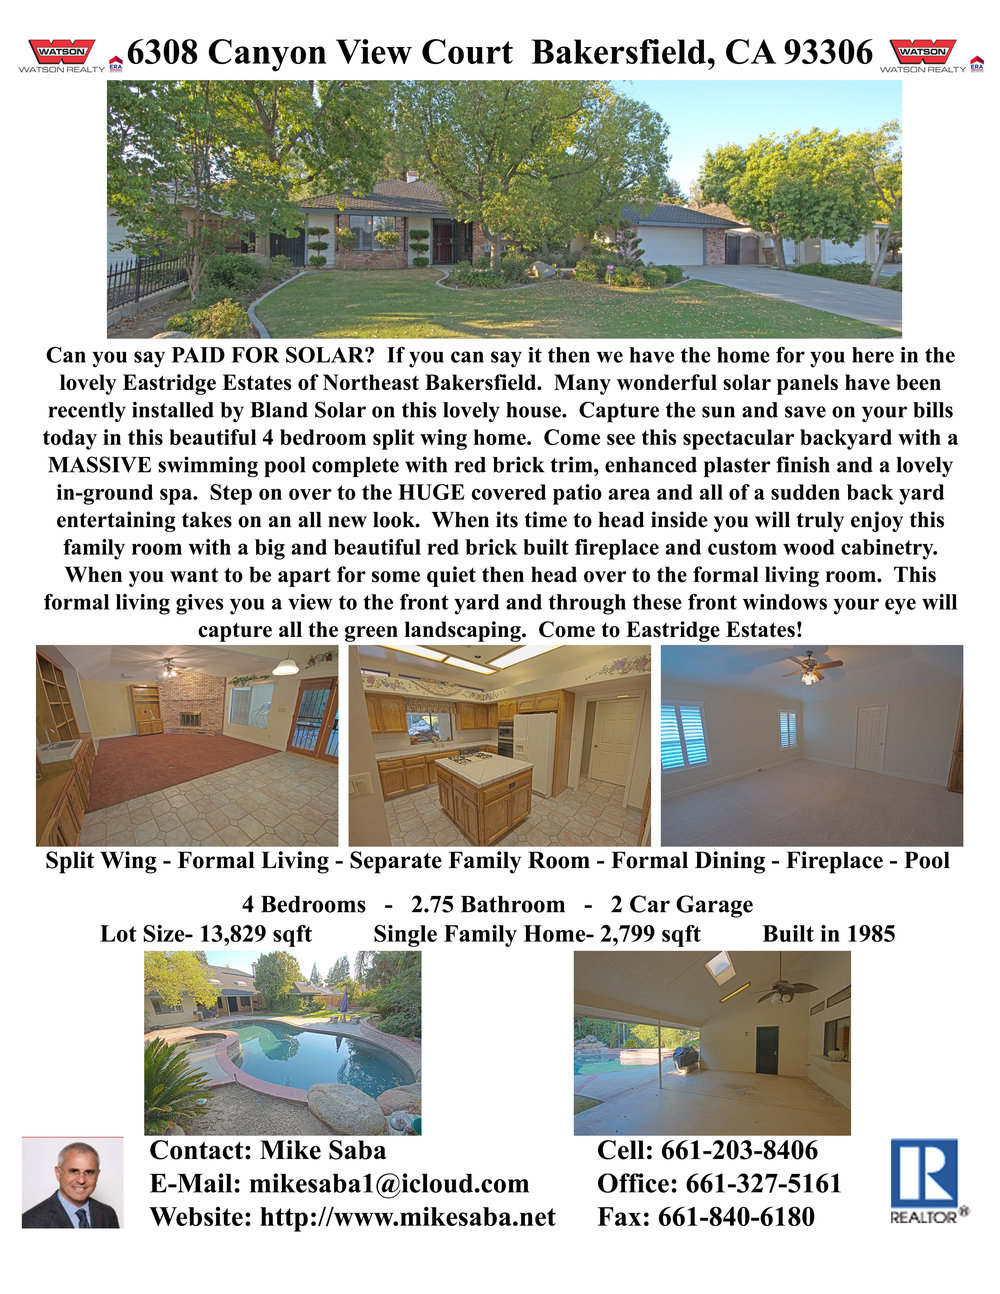 6308 Canyon View Court Flyer.jpg